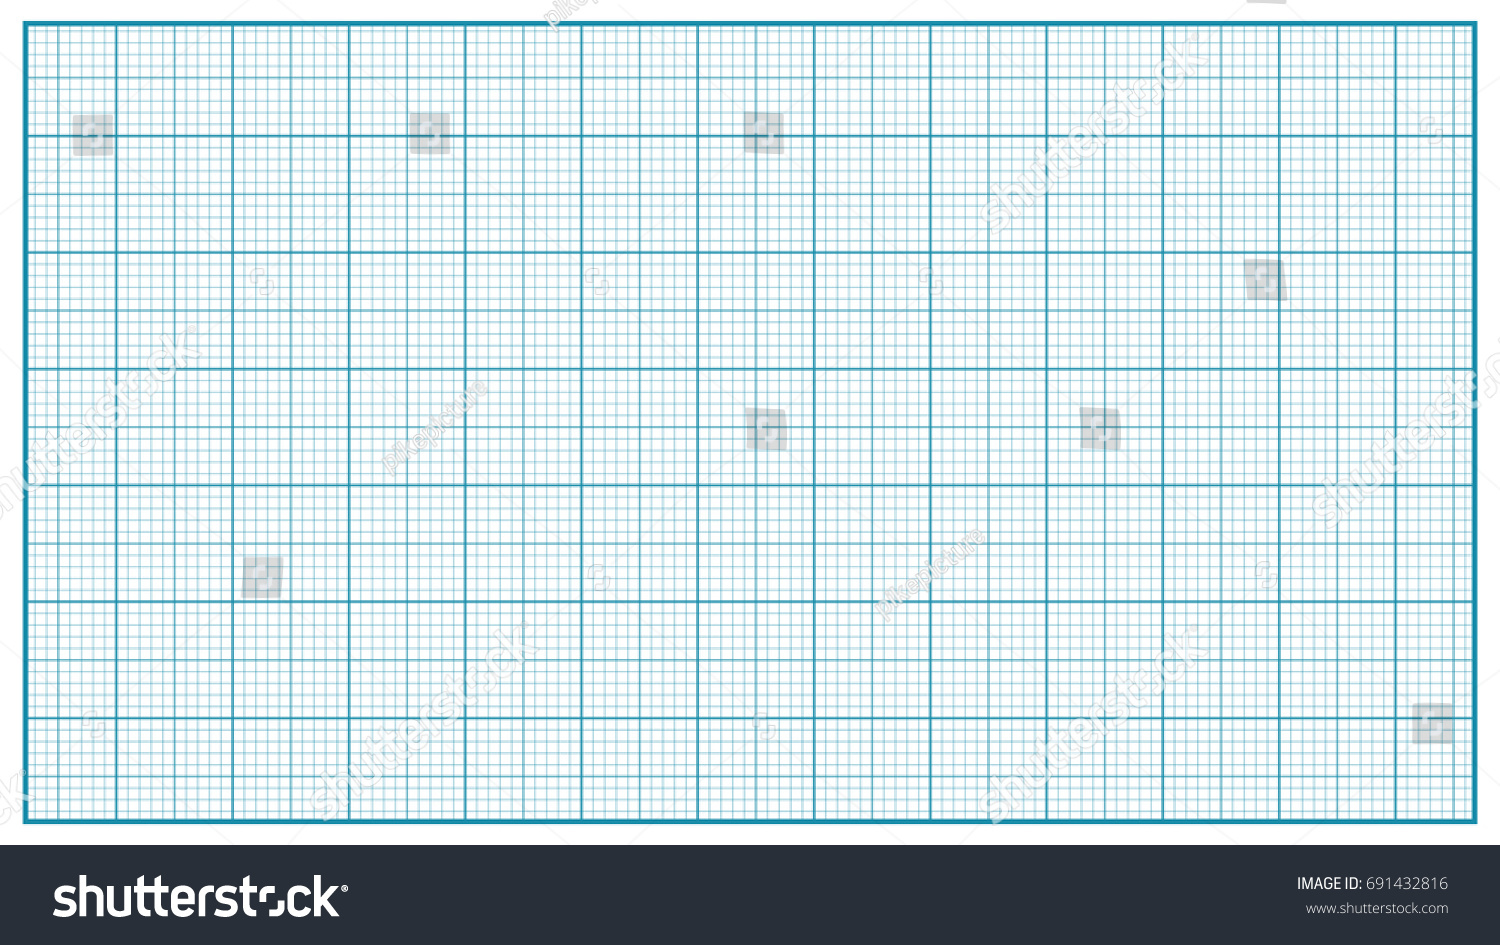 millimeter paper vector blue graphing paper stock vector royalty